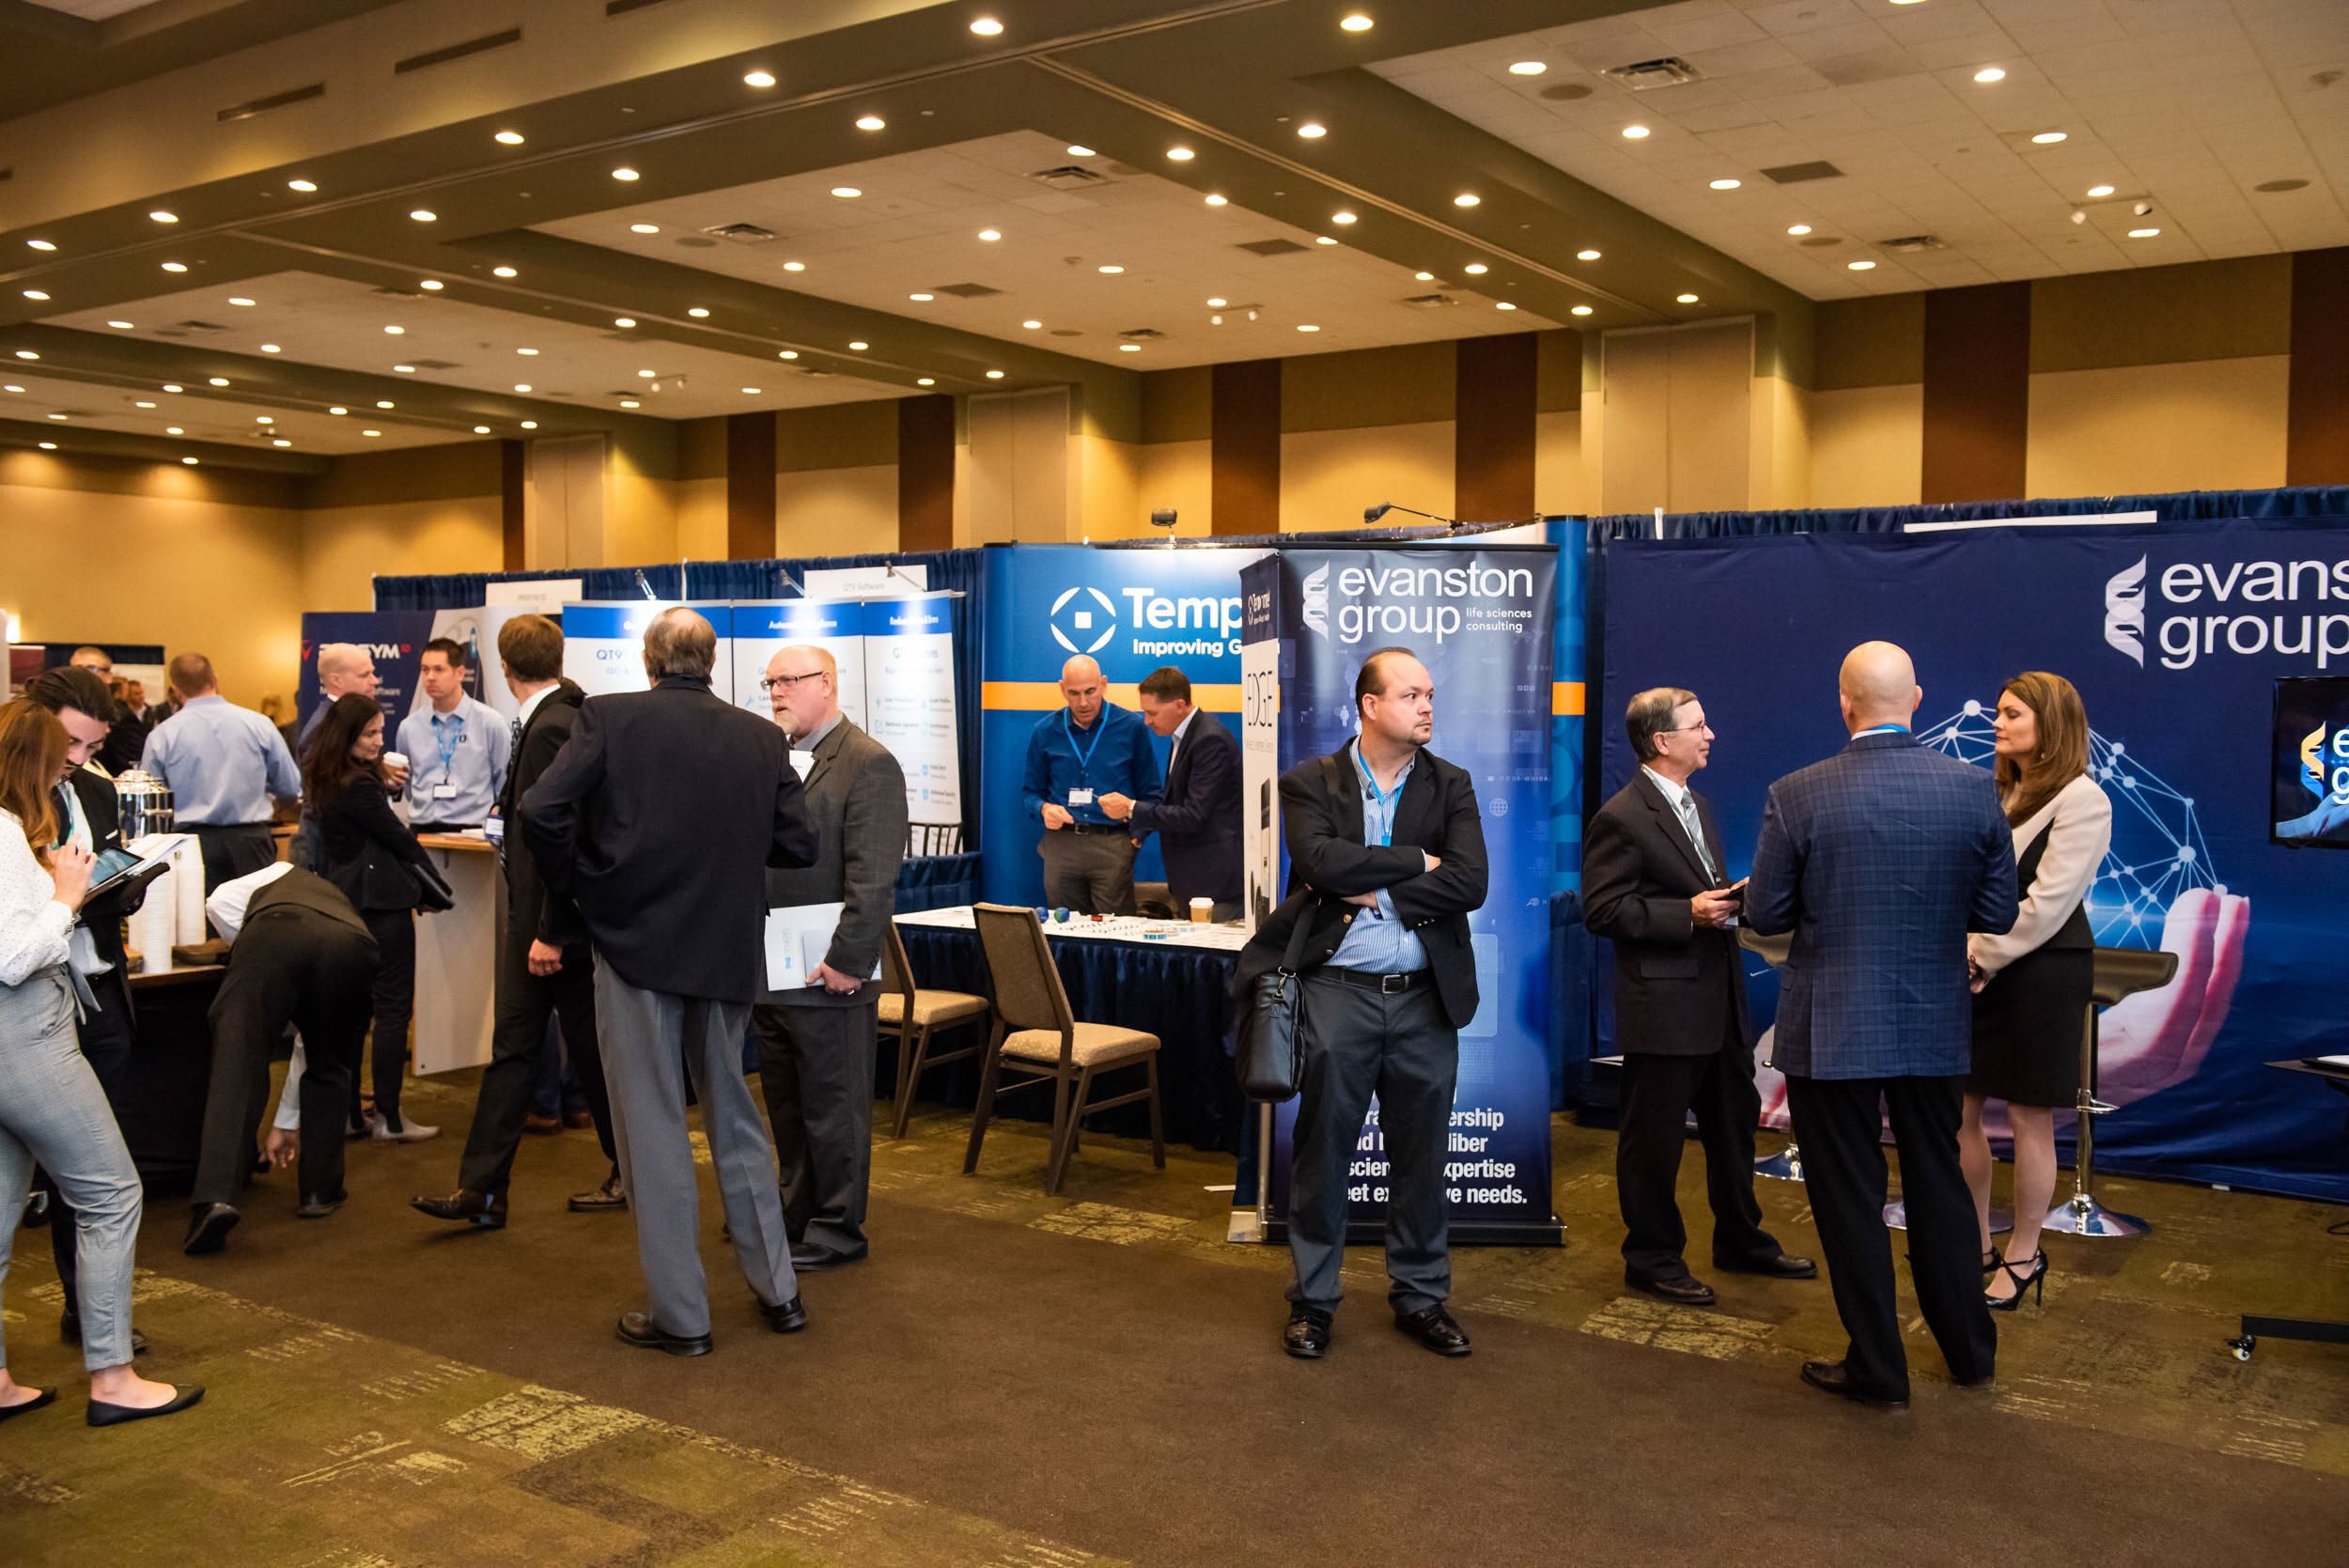 181024 - American Medical Device Summit - mark campbell photography-114_Resized_Resized.jpg